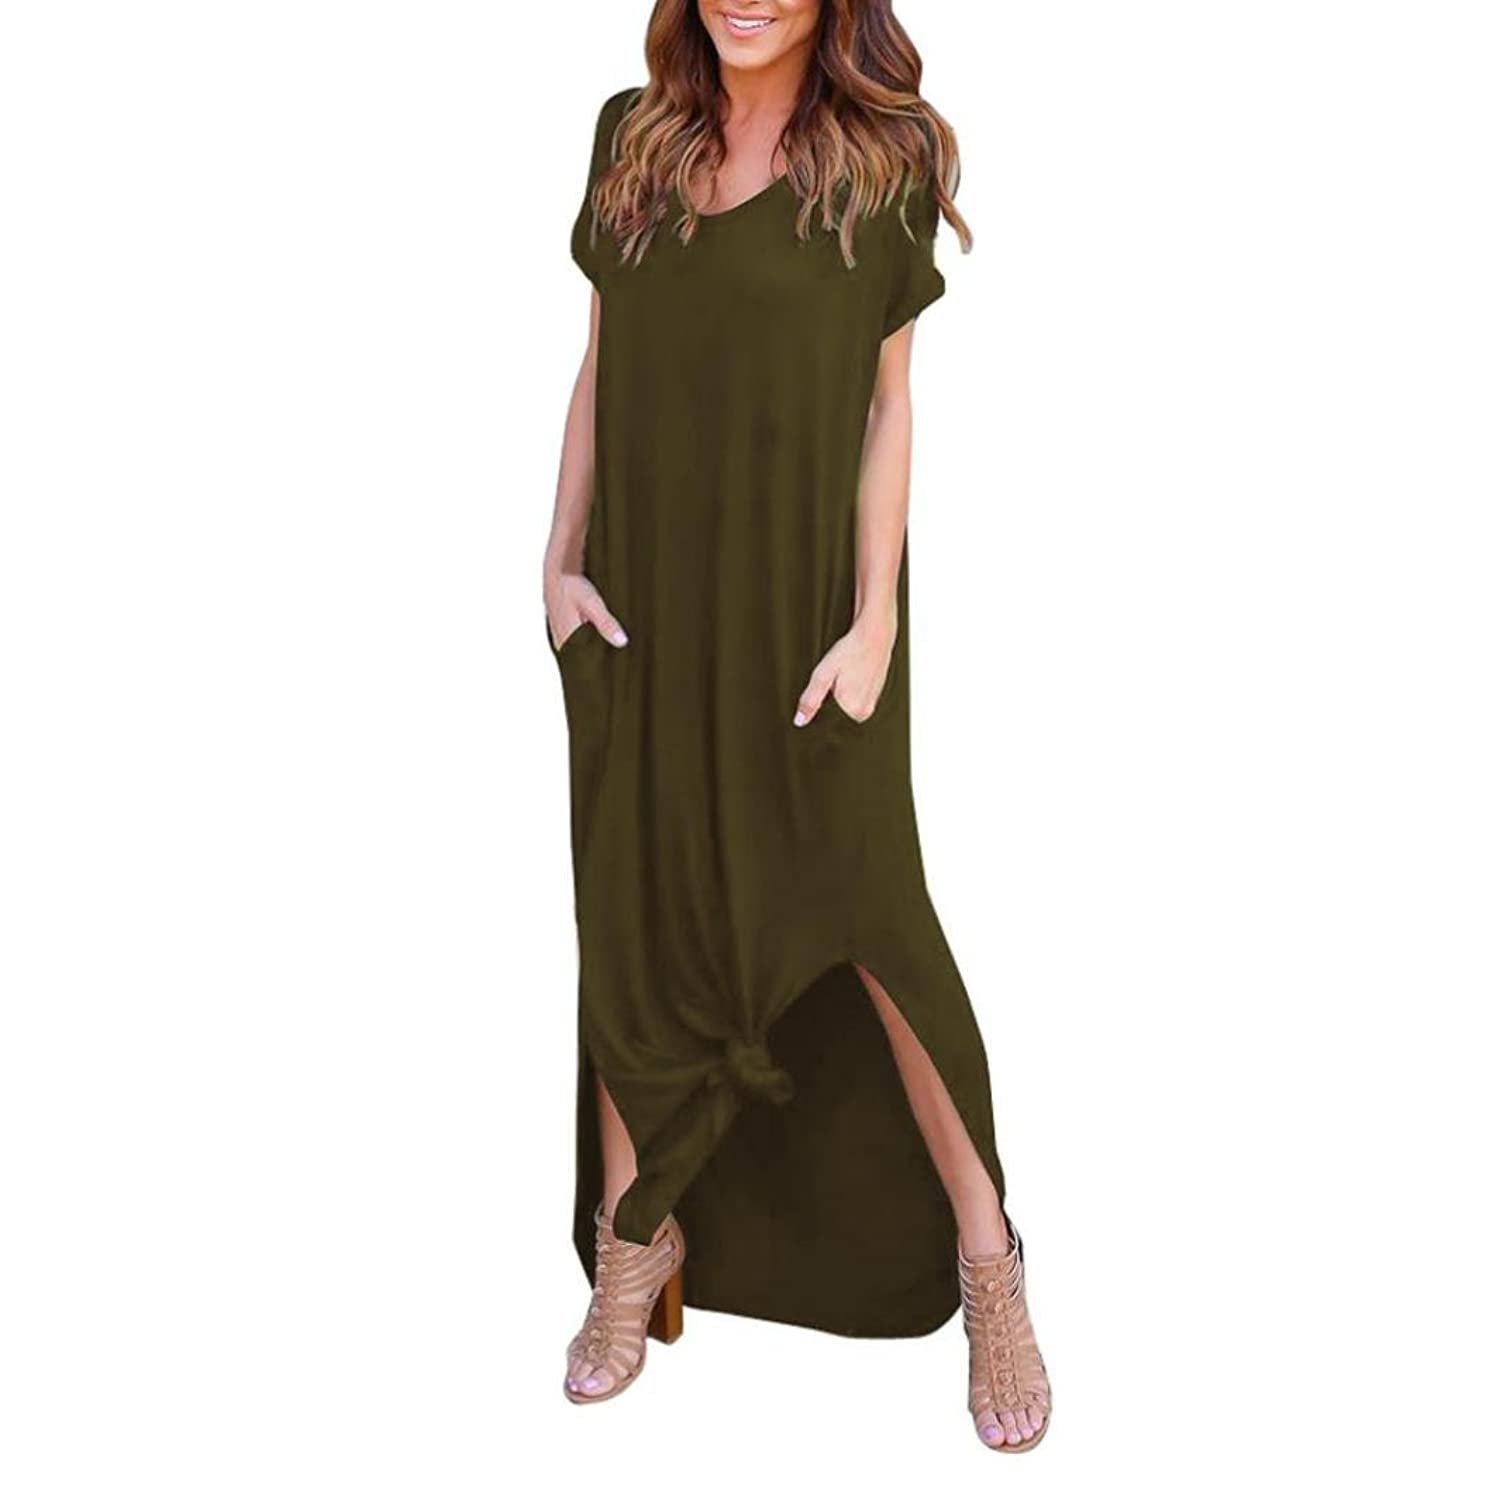 Kimloog Women's Short Sleeve Summer Casual Loose T-Shirt Long Maxi Dress Side Split Beach Sundress